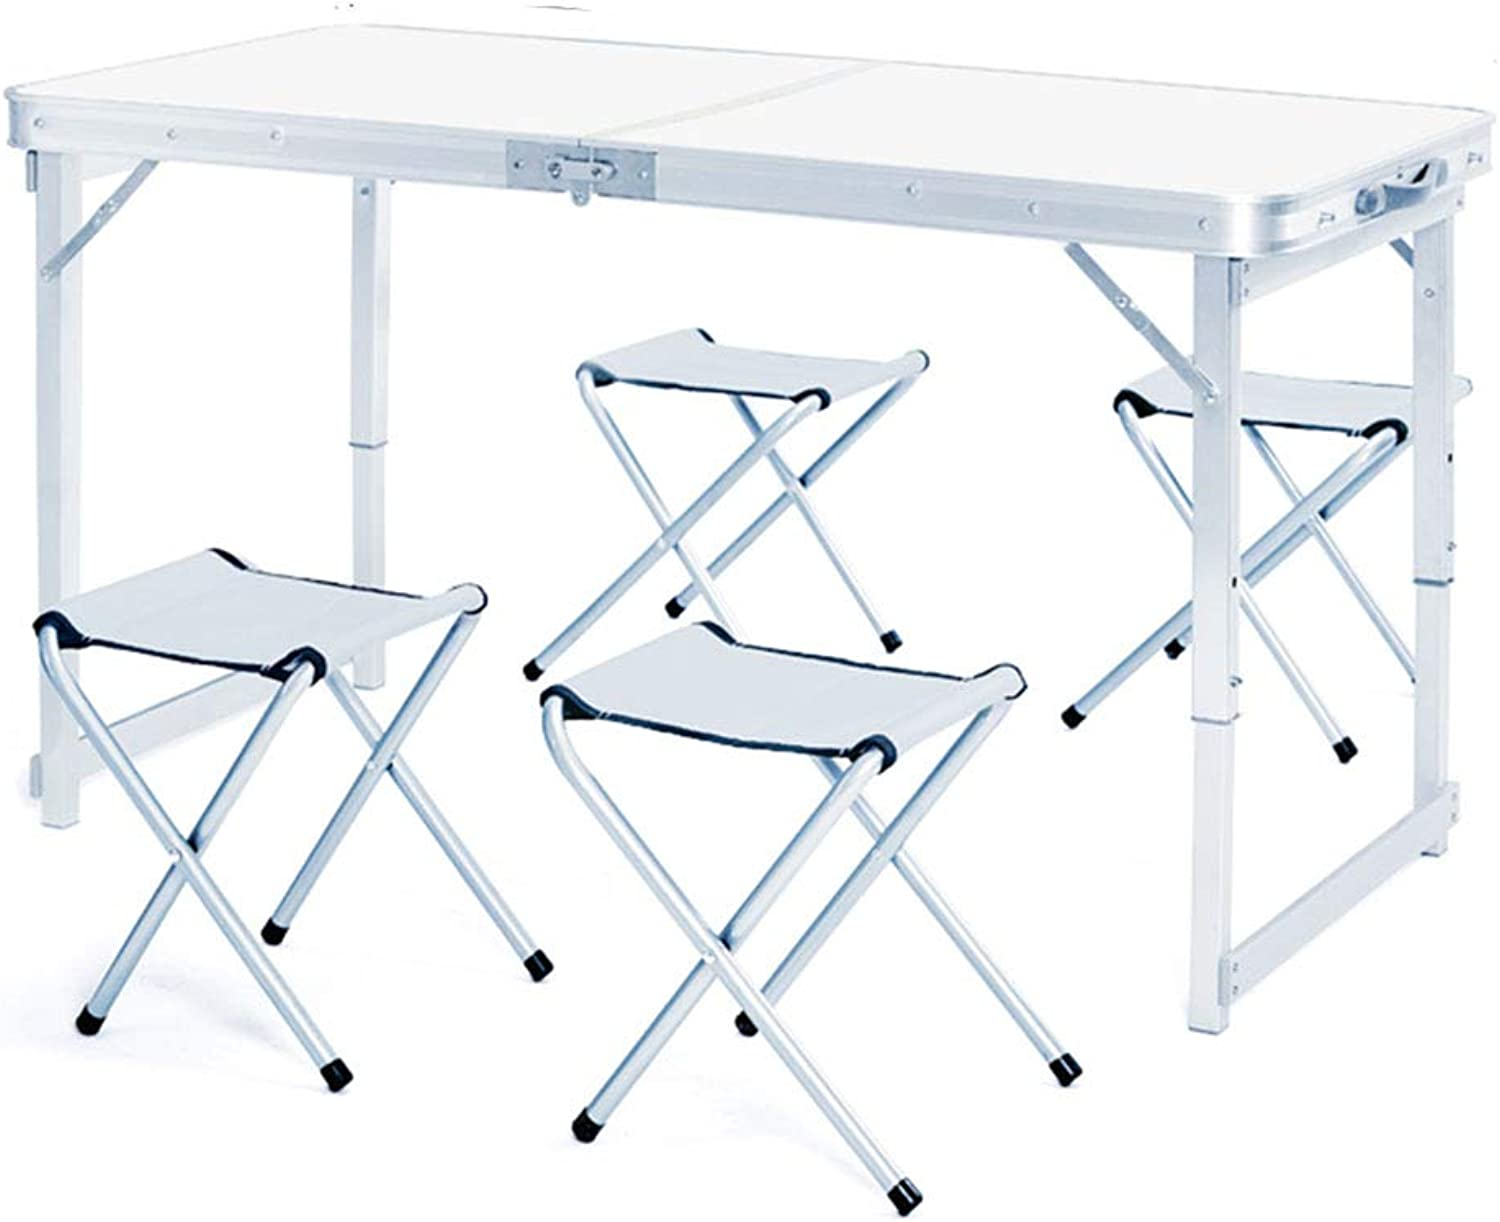 NJLC Picnic Table, Convenient Household Folding Side Table Use Easy Fold Up Table,White,B